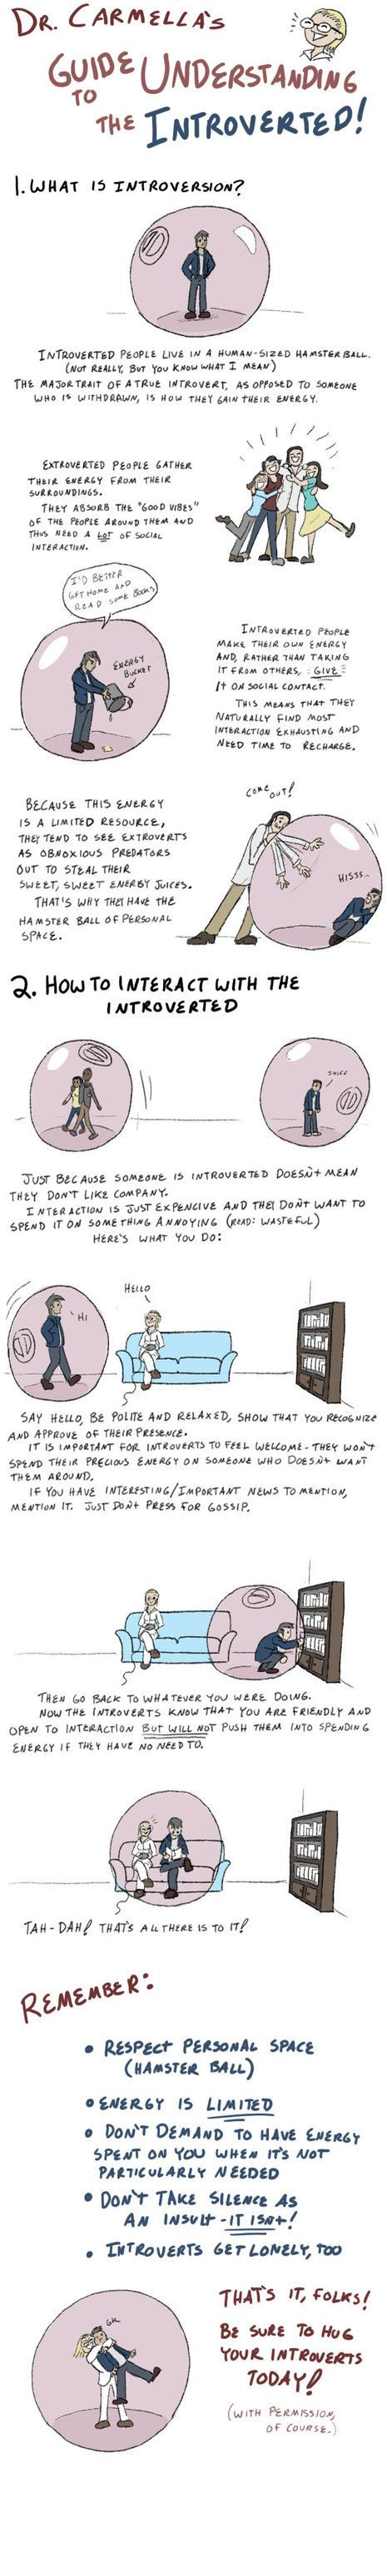 Dr. Carmella's Guide To Understanding The Introverted (I